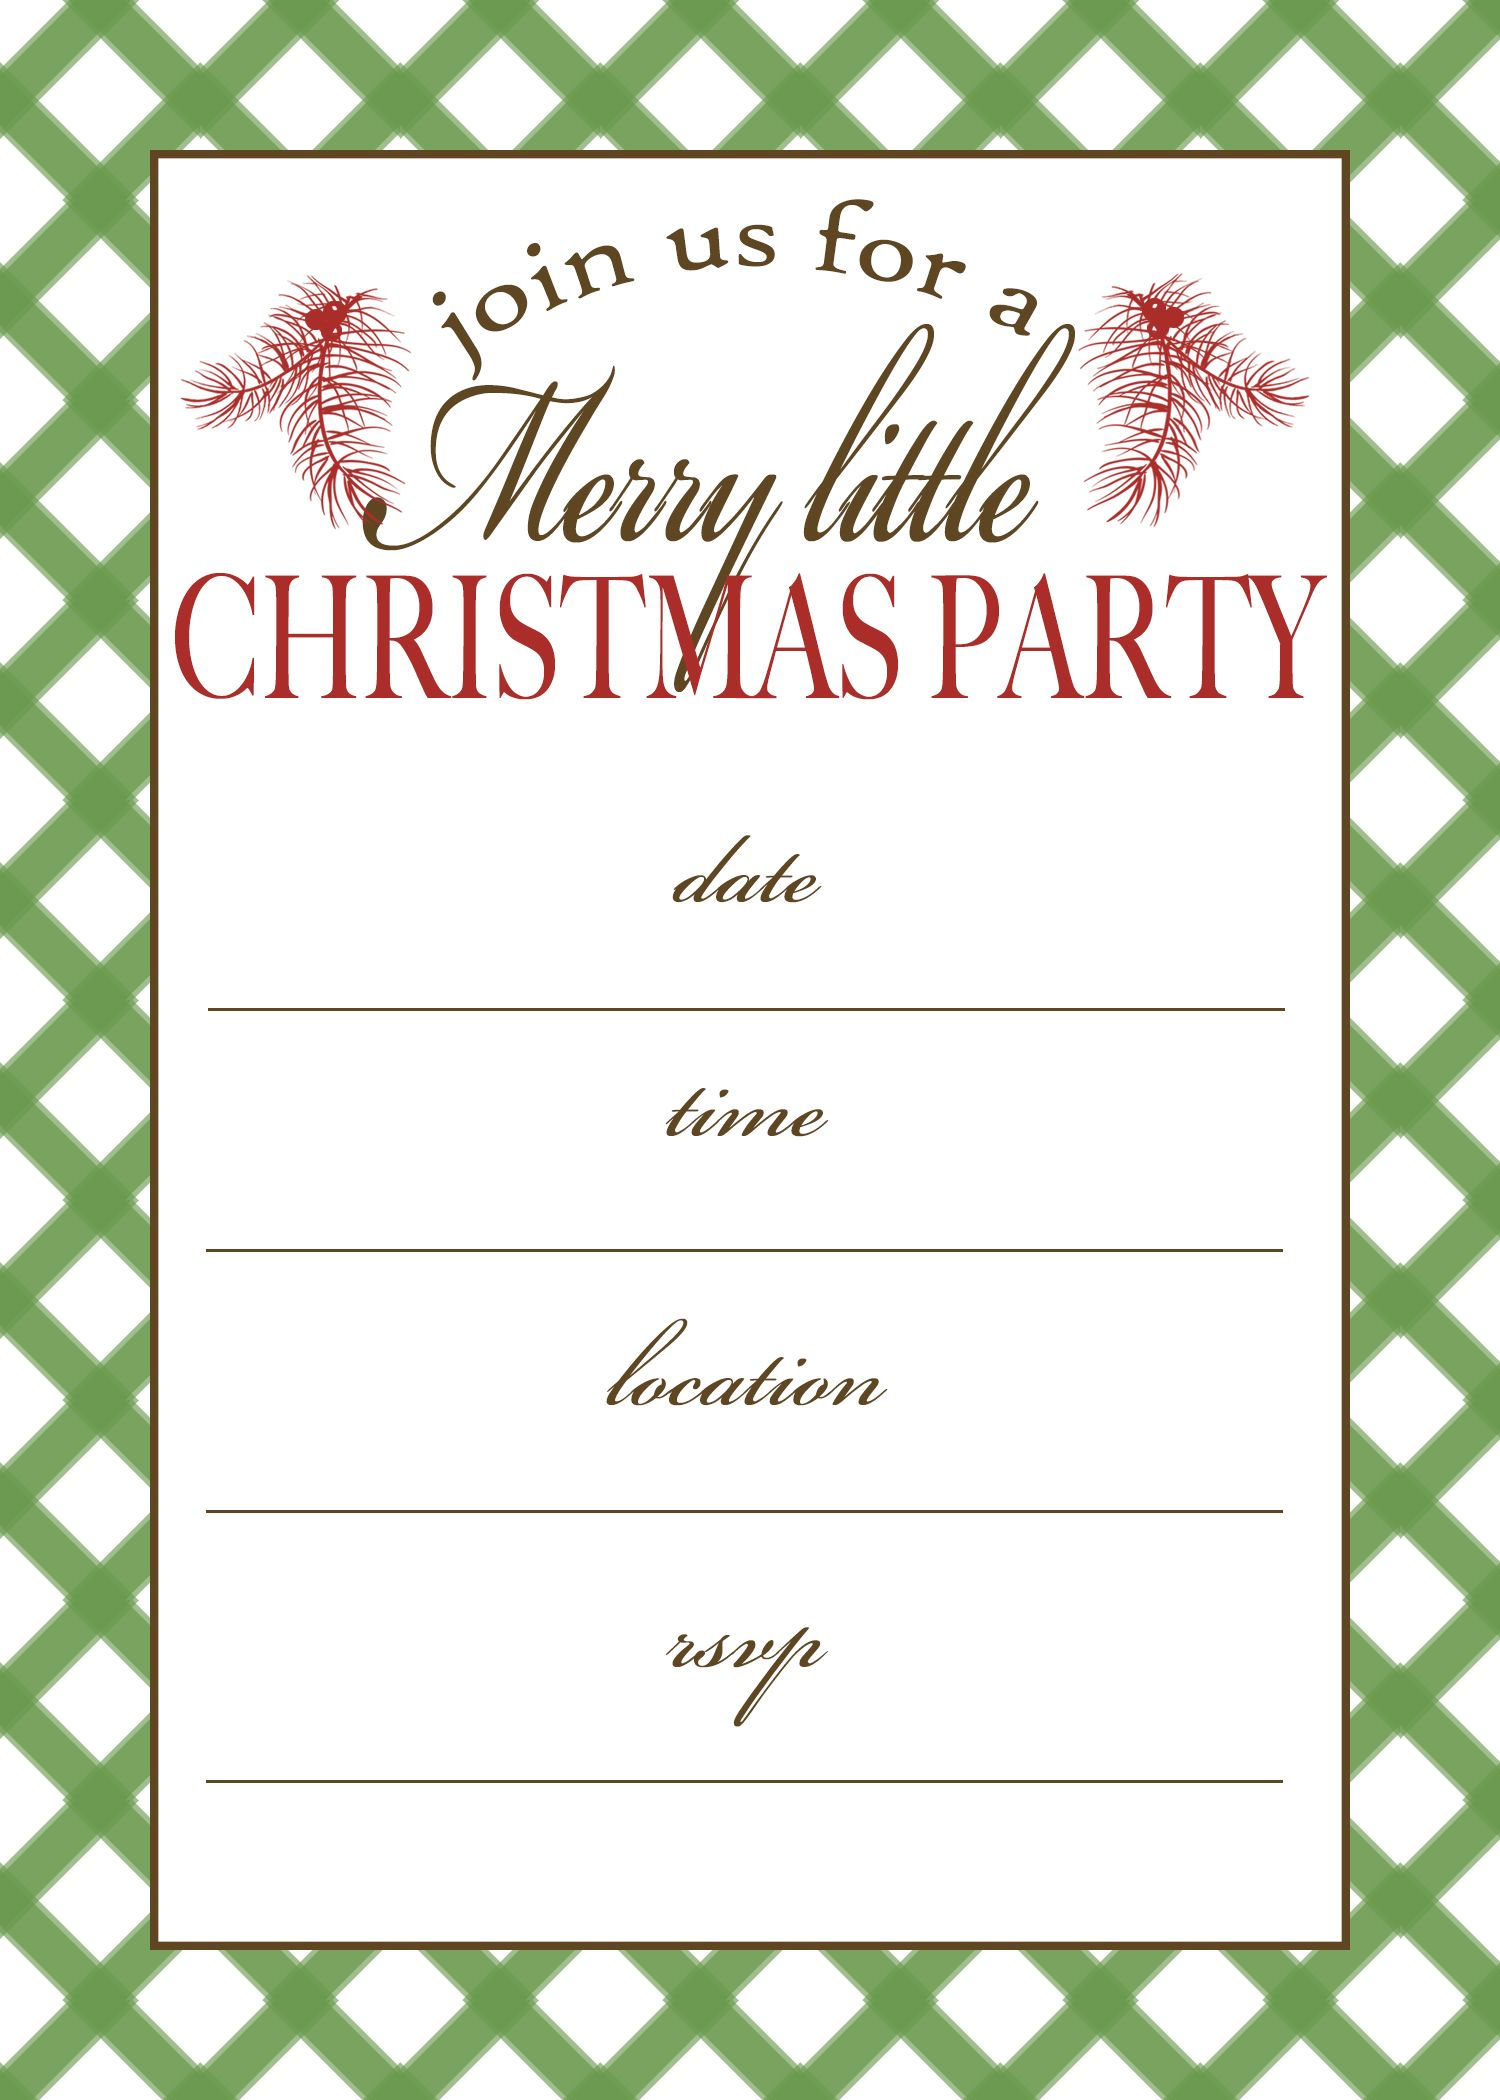 christmas party invitations template - Etame.mibawa.co